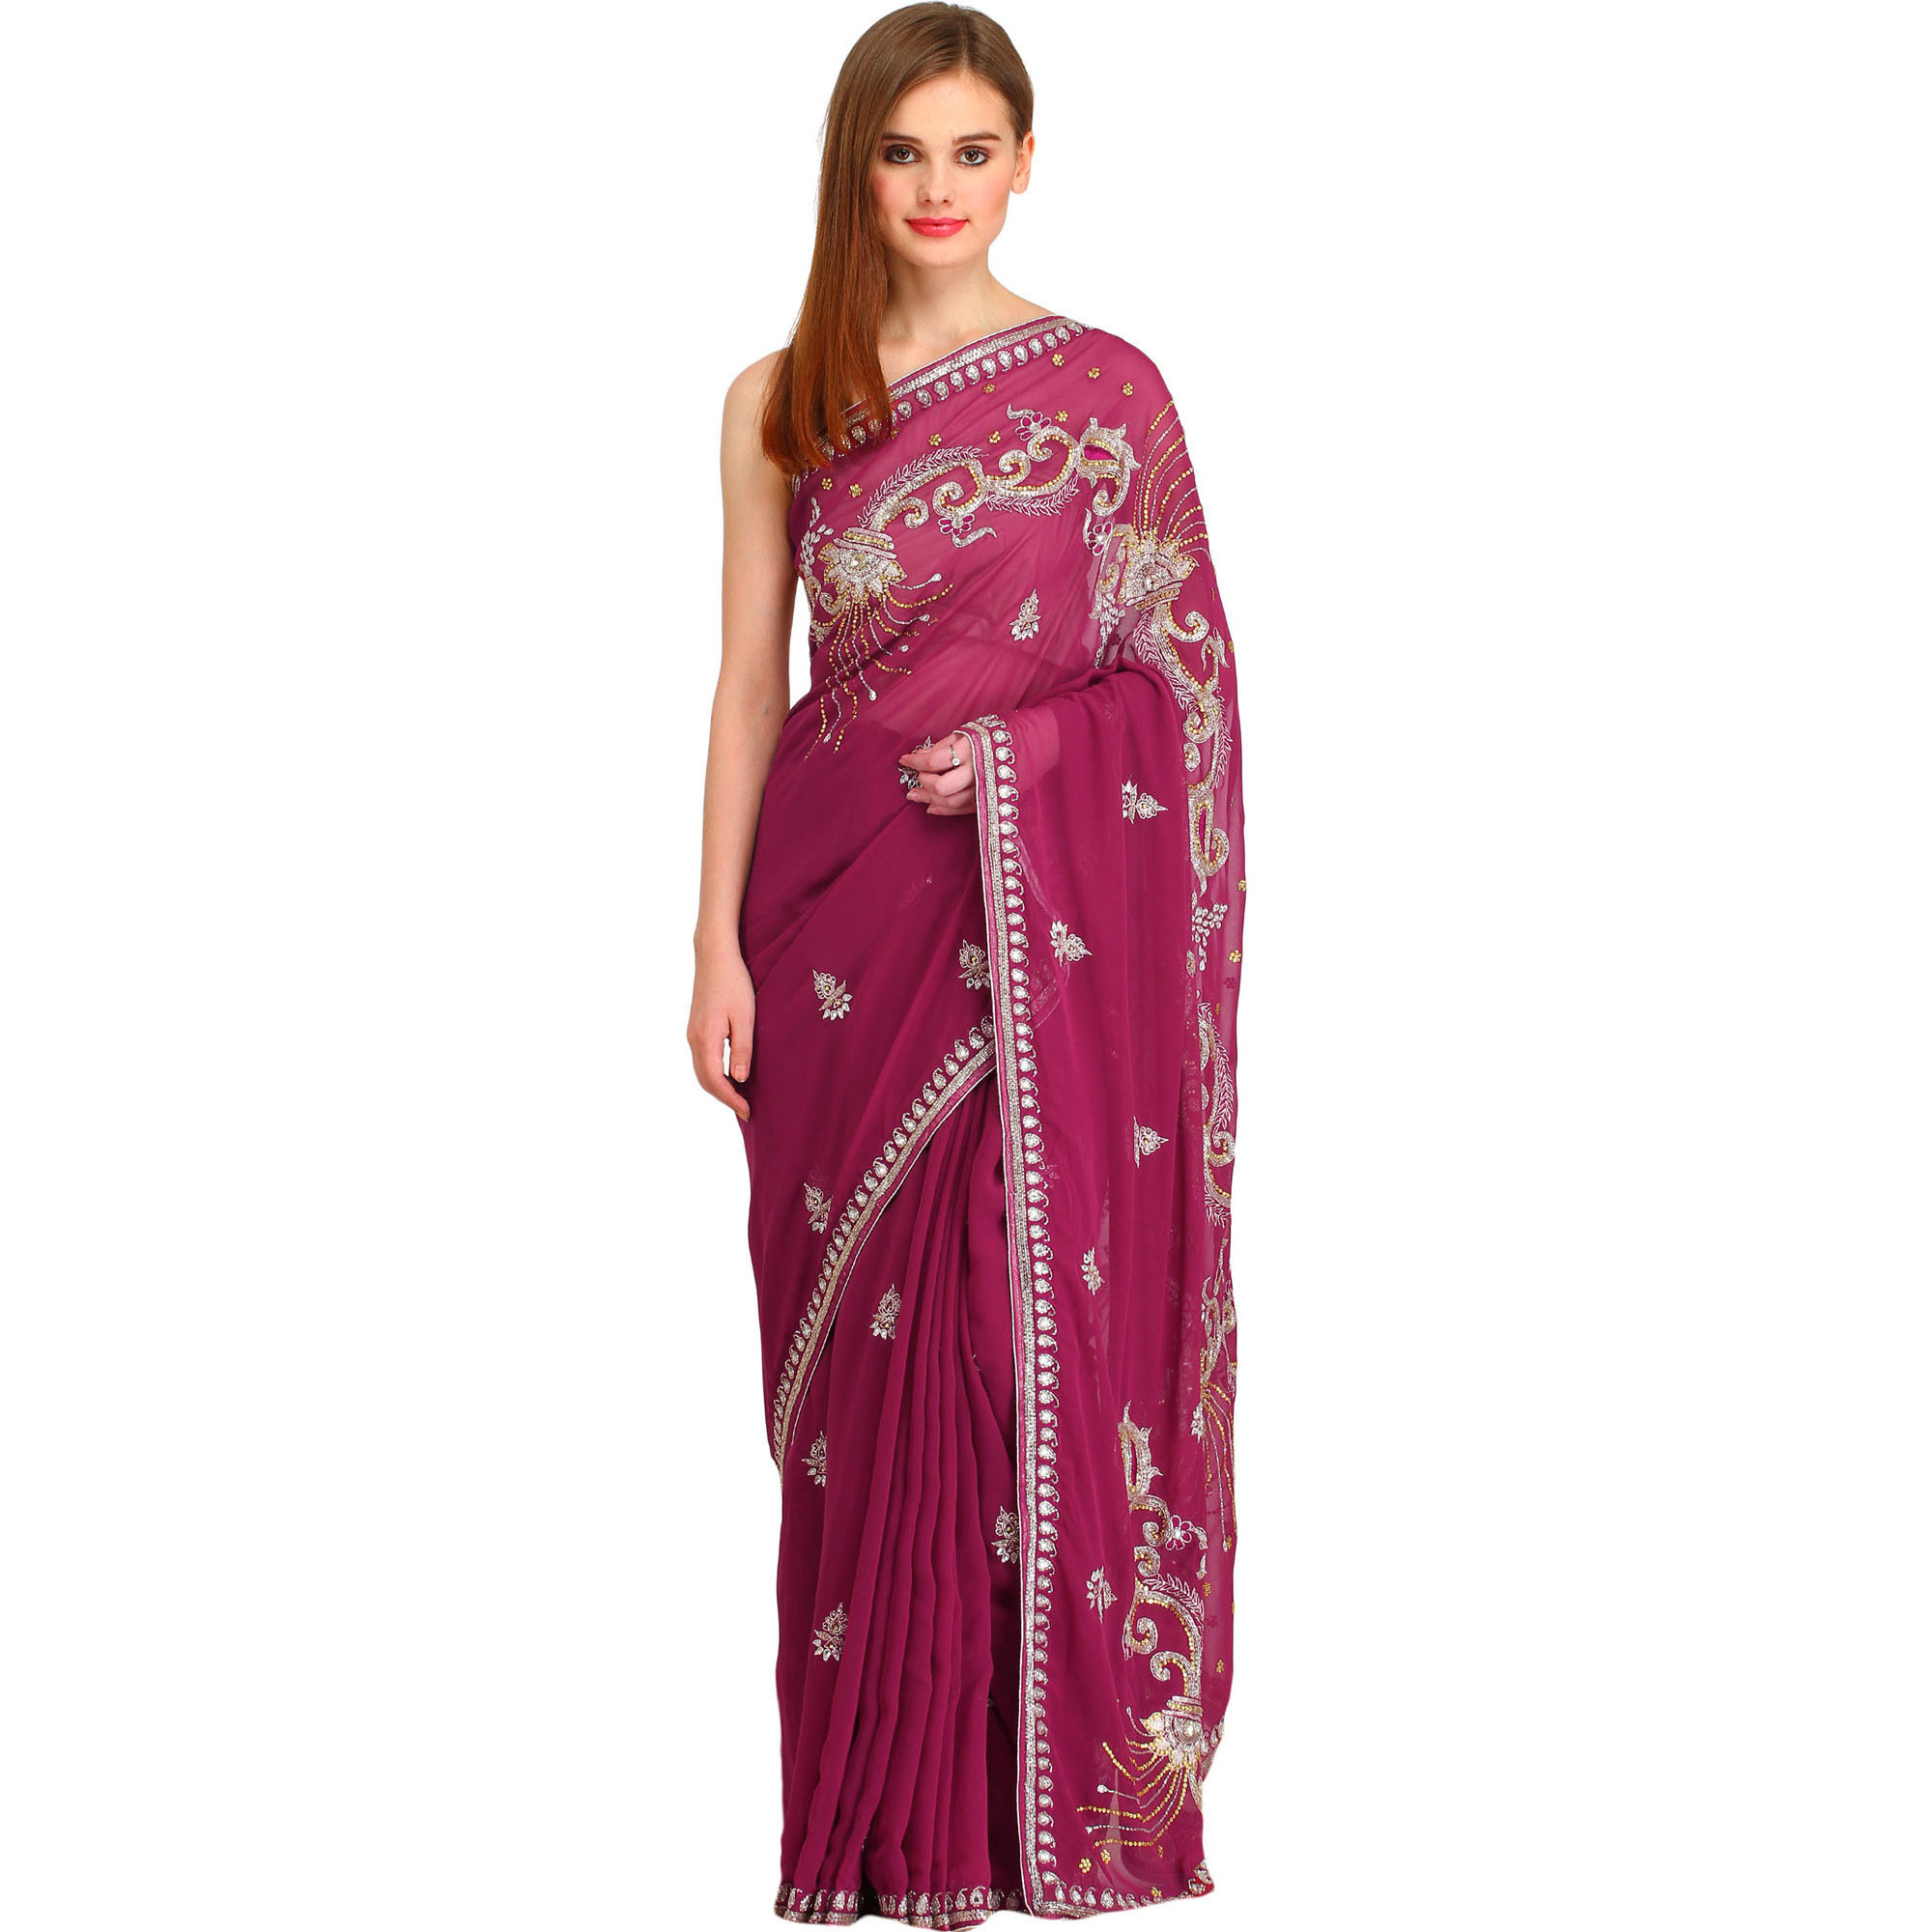 Violet-Quartz Designer Wedding Sari with Embroidered-Beads and Stone-work